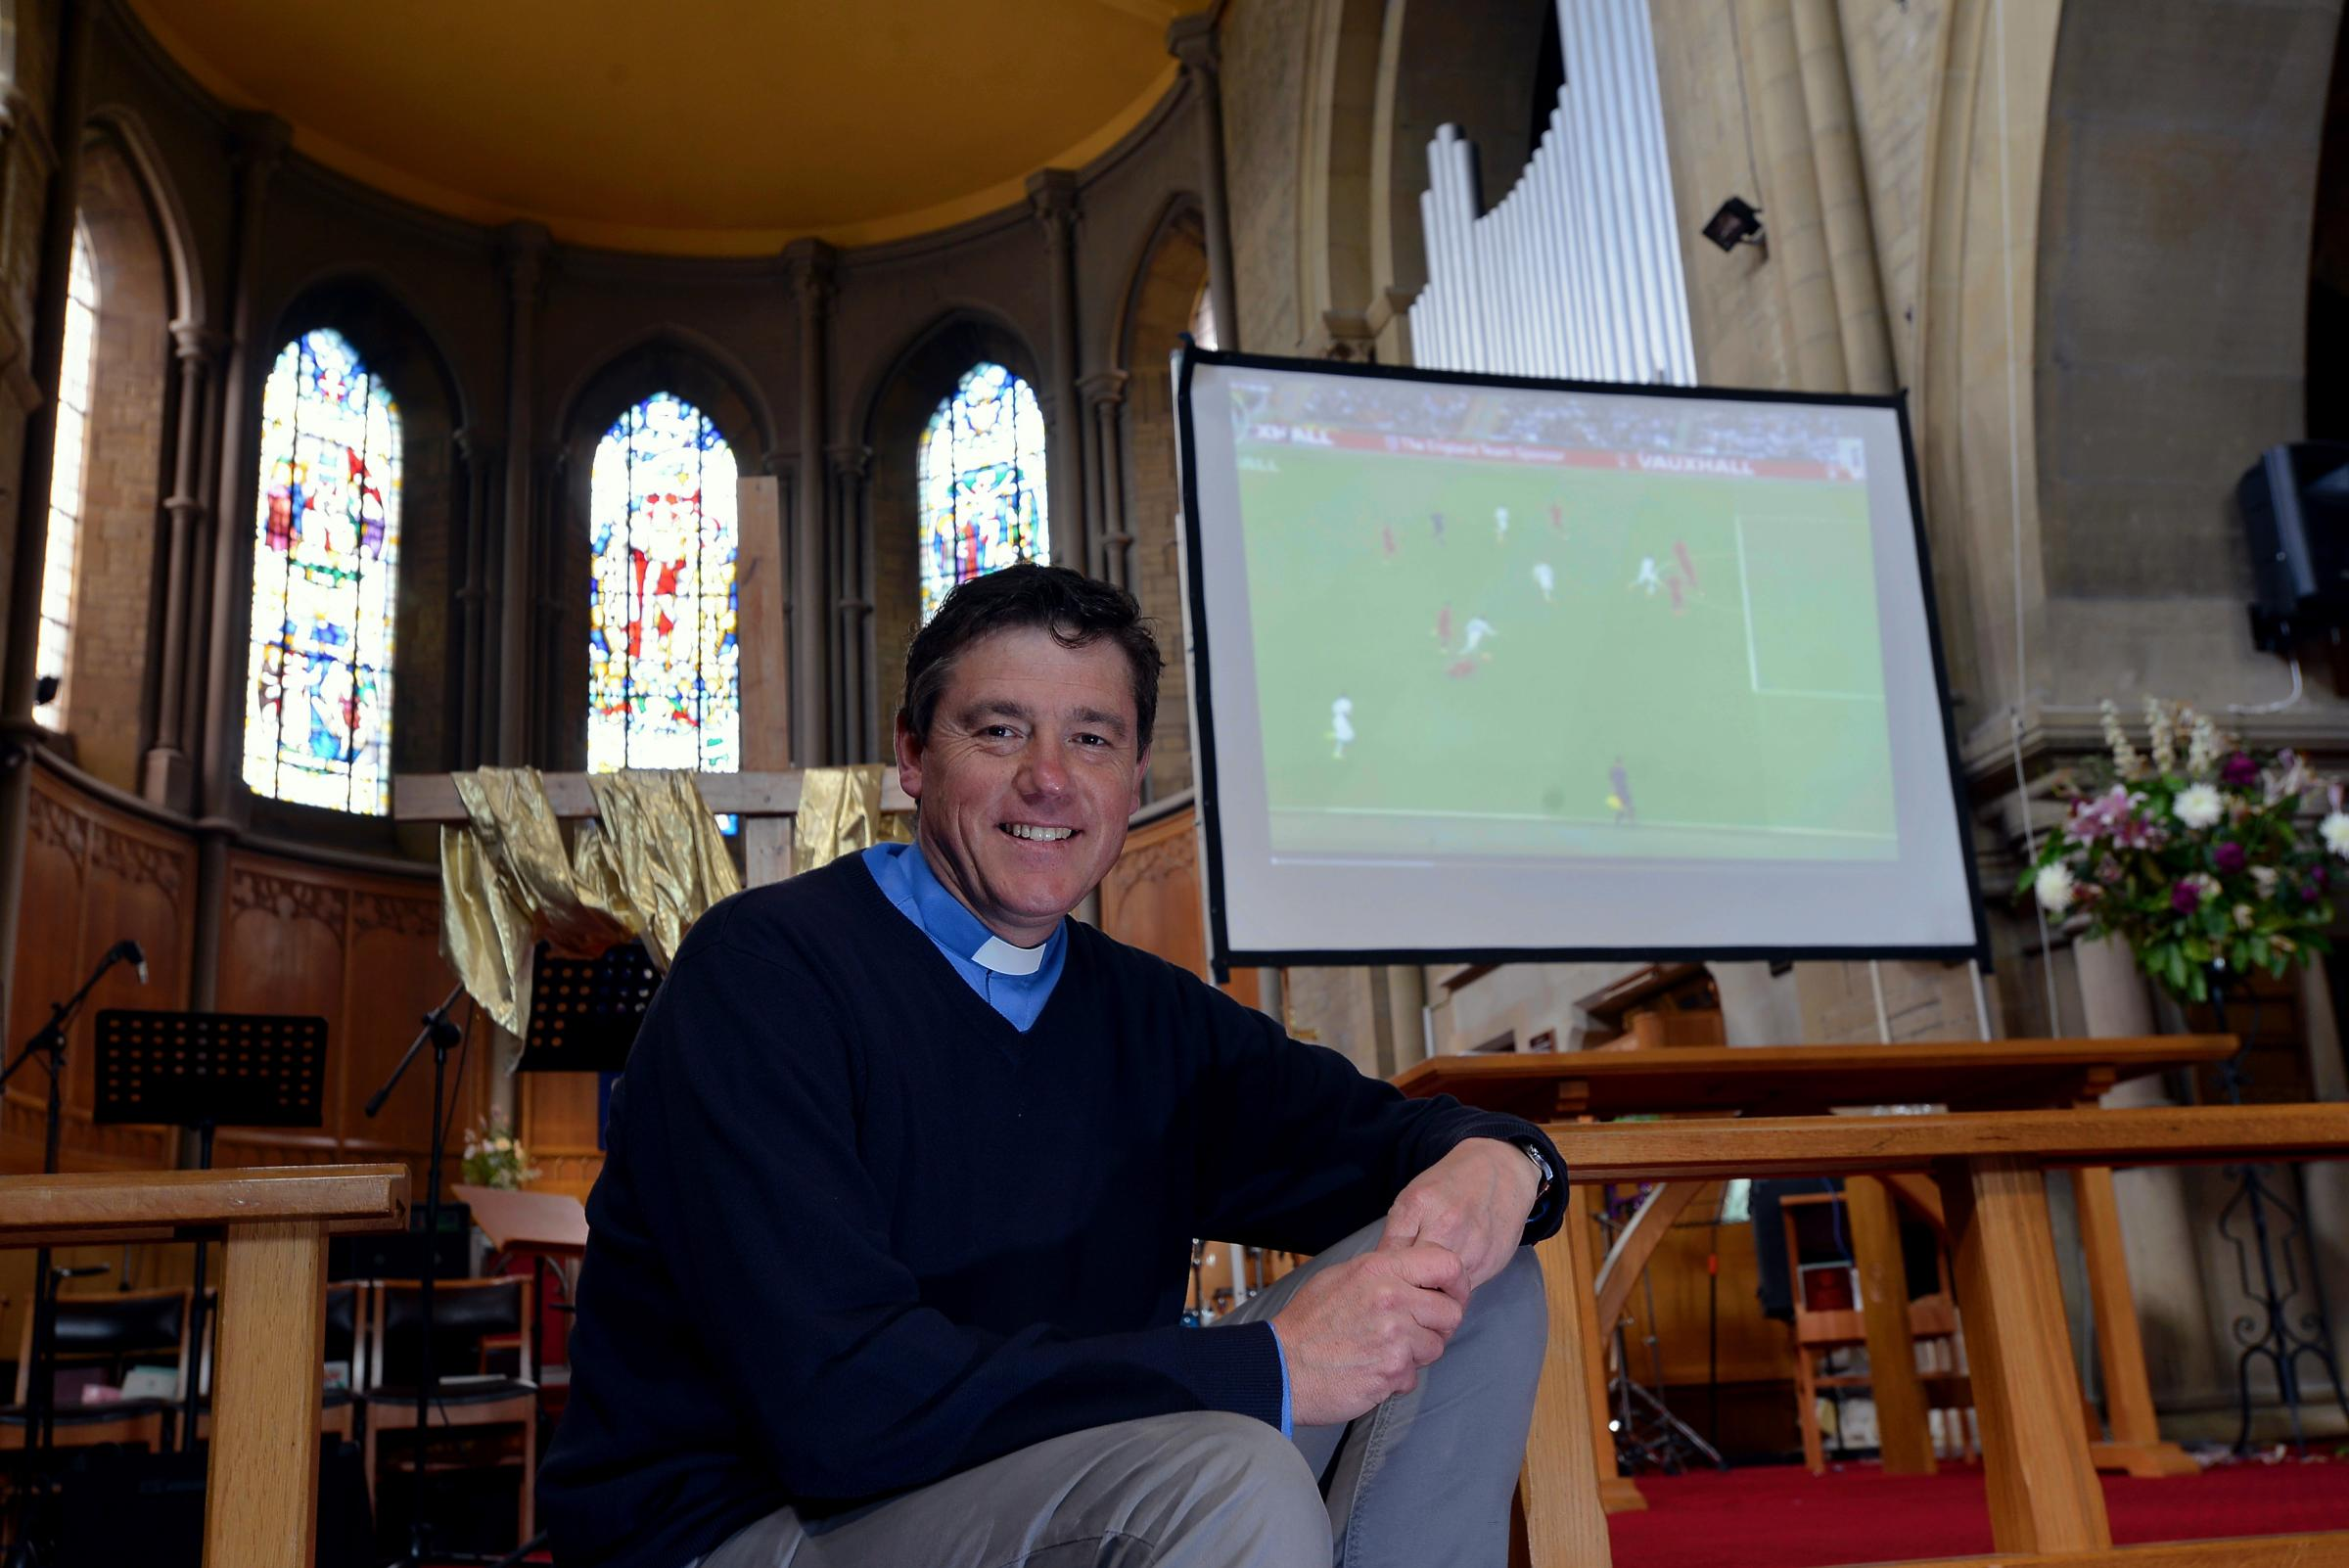 The Rev John Bavington, vicar of St John Church, Great Horton, is opening the church's doors over the World Cup